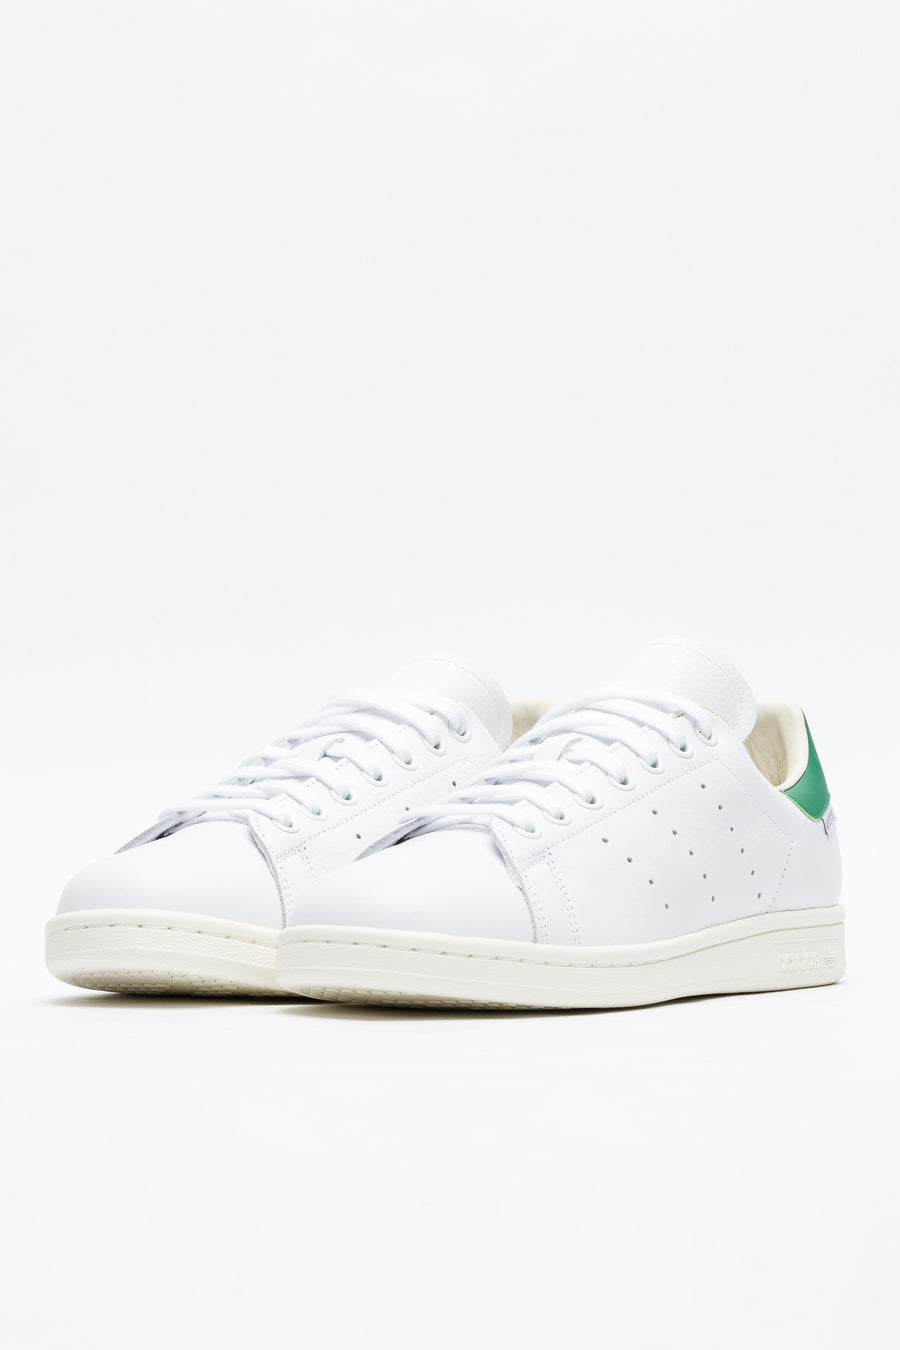 adidas Stan Smith Gore-Tex in White - Notre